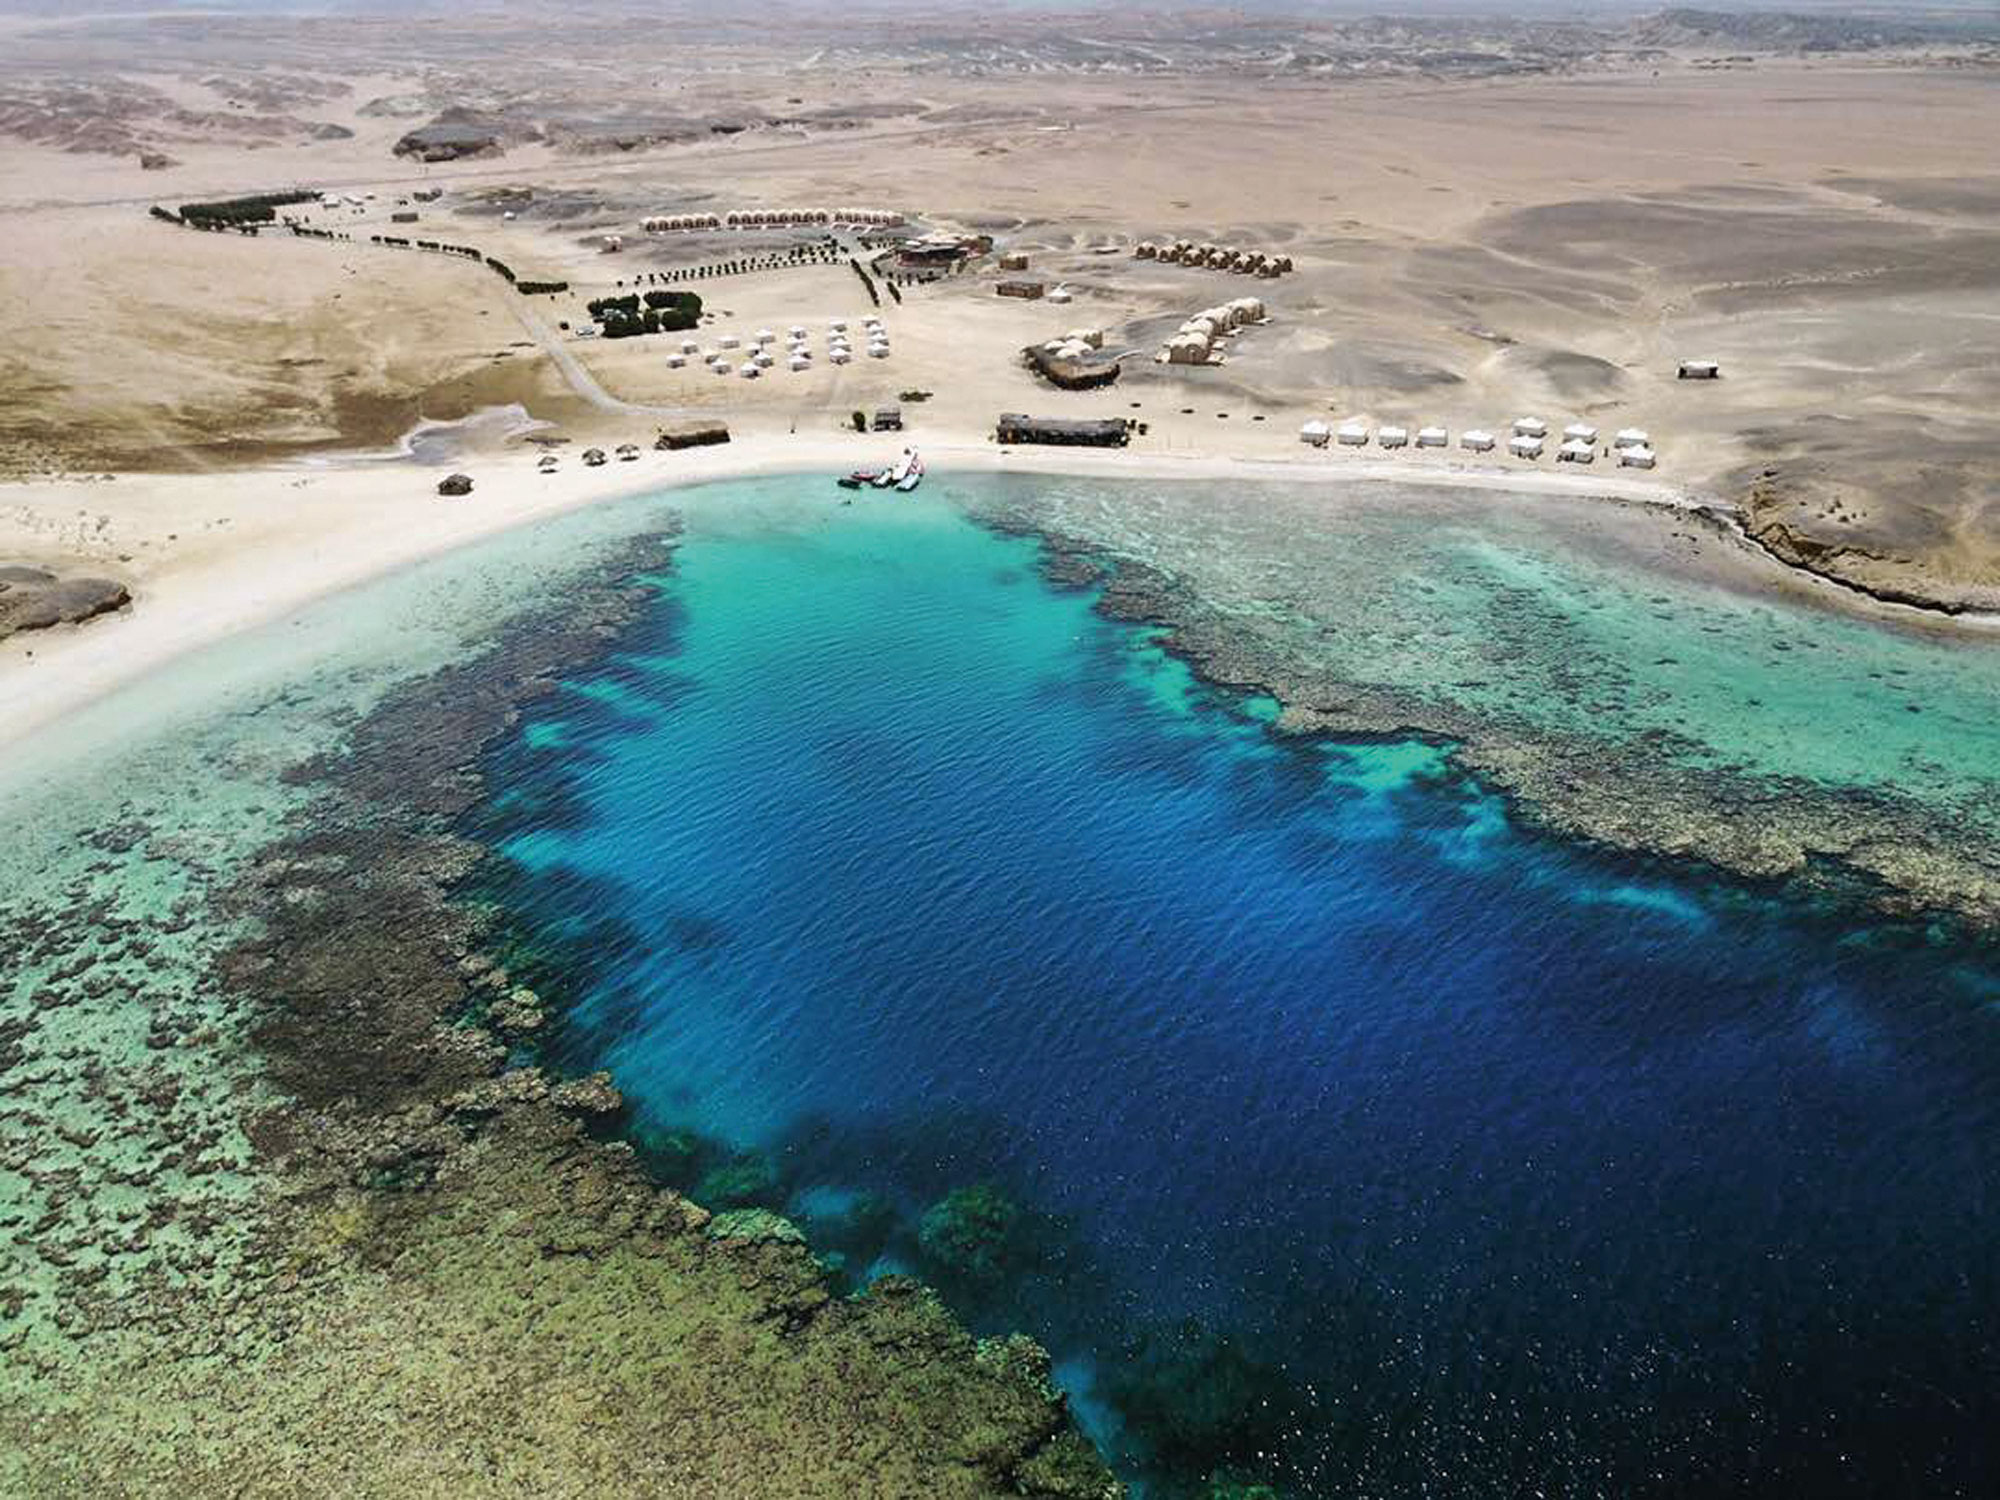 aerial view of marsa shagra resort and house reef